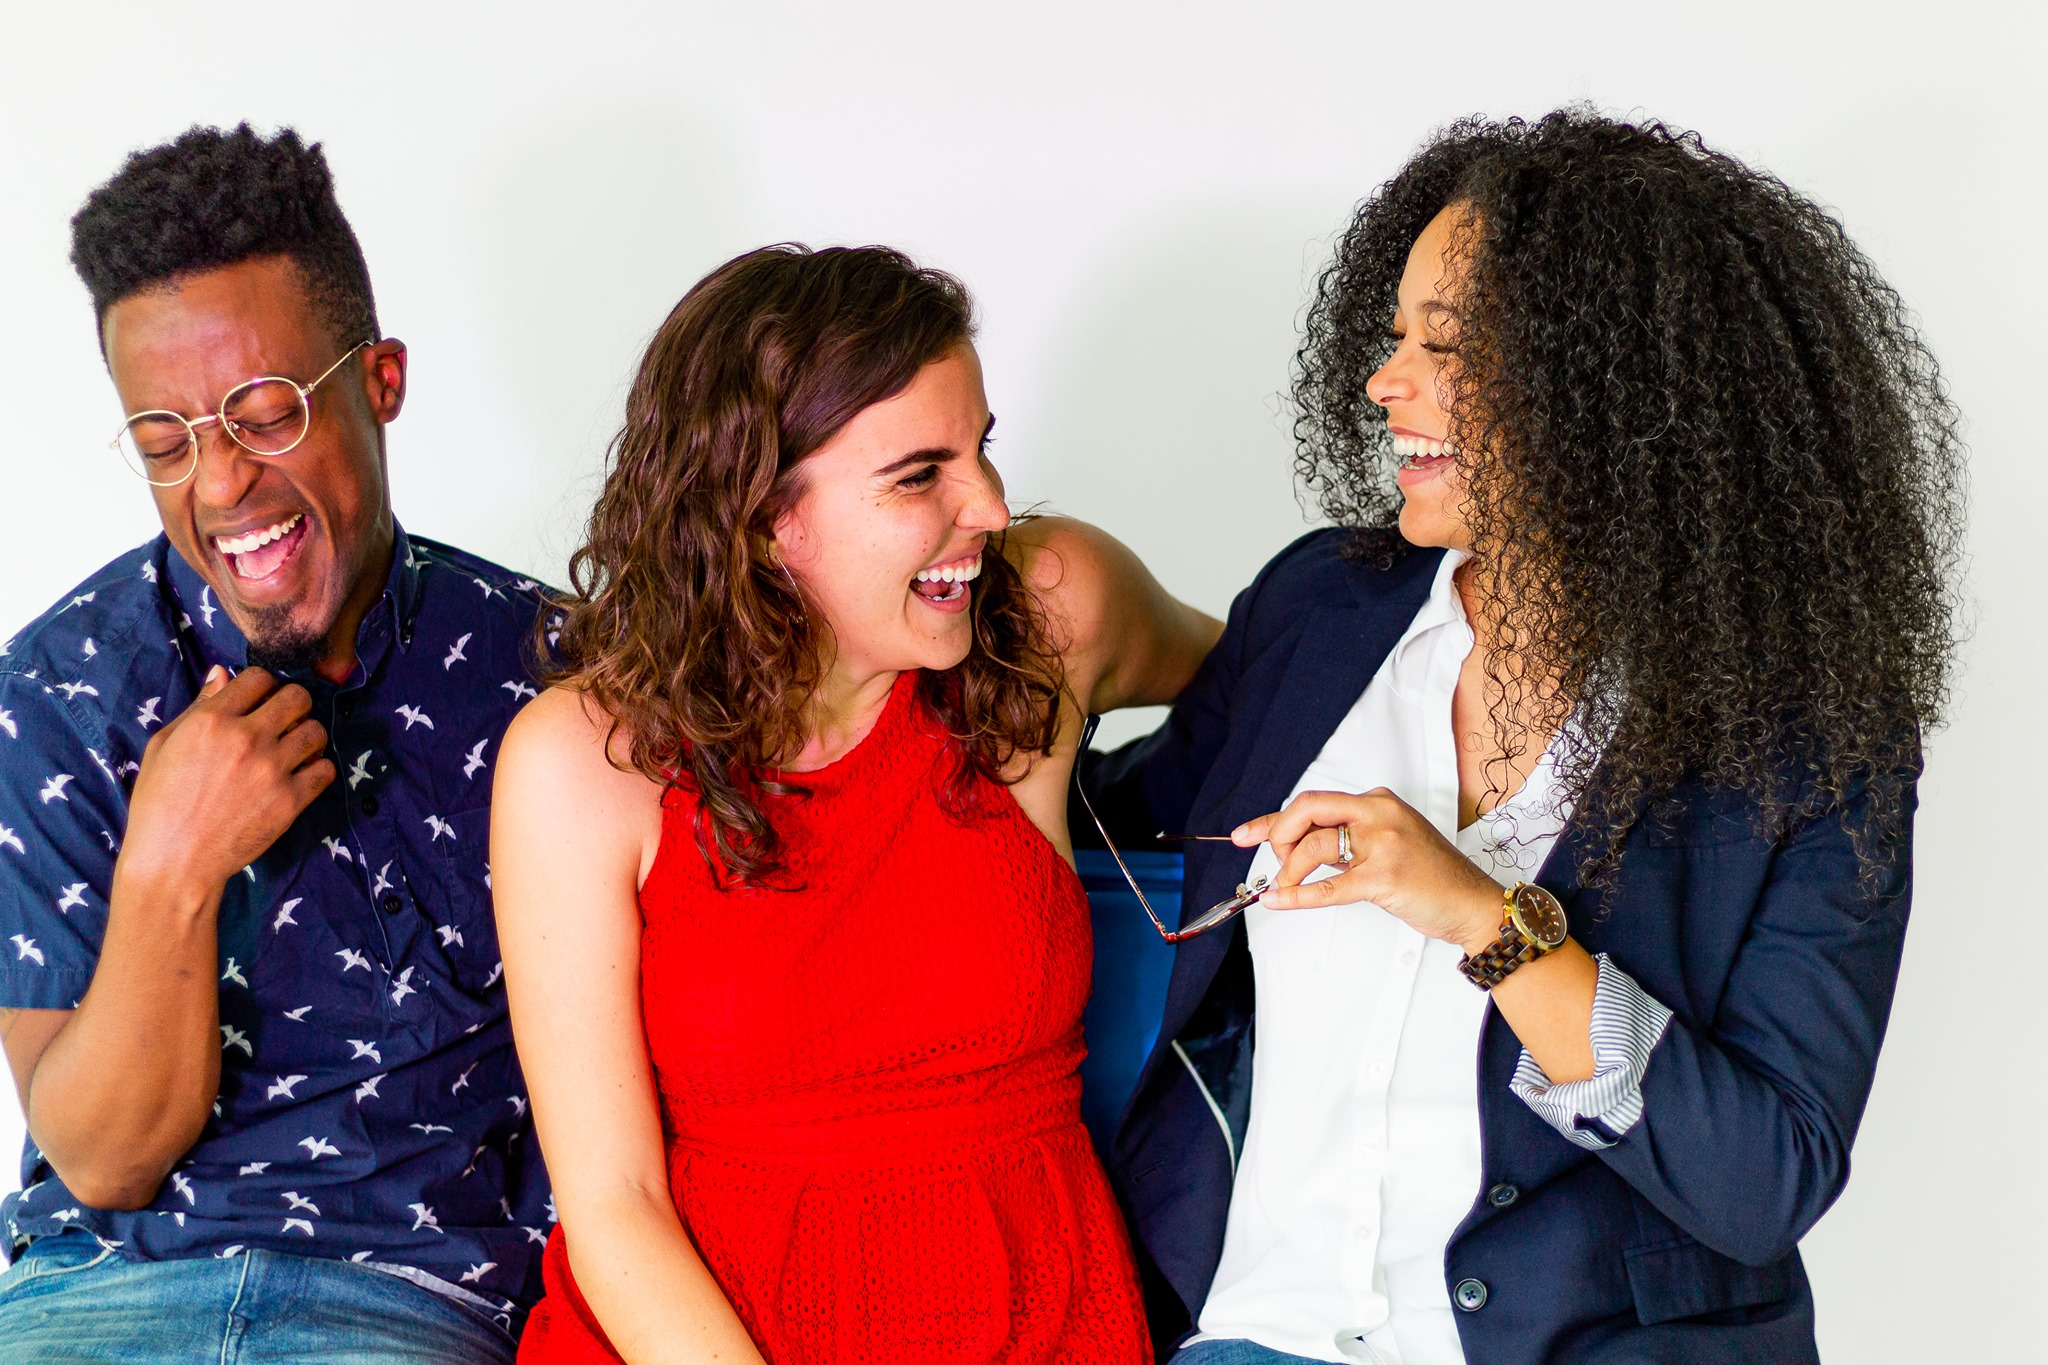 American Stage Adult Education Associate and ASI Study Hall moderator Patrick A. Jackson, far left, with Community Engagement Coordinator Sadie Lockhart and Renata Eastlick, right, laughing together